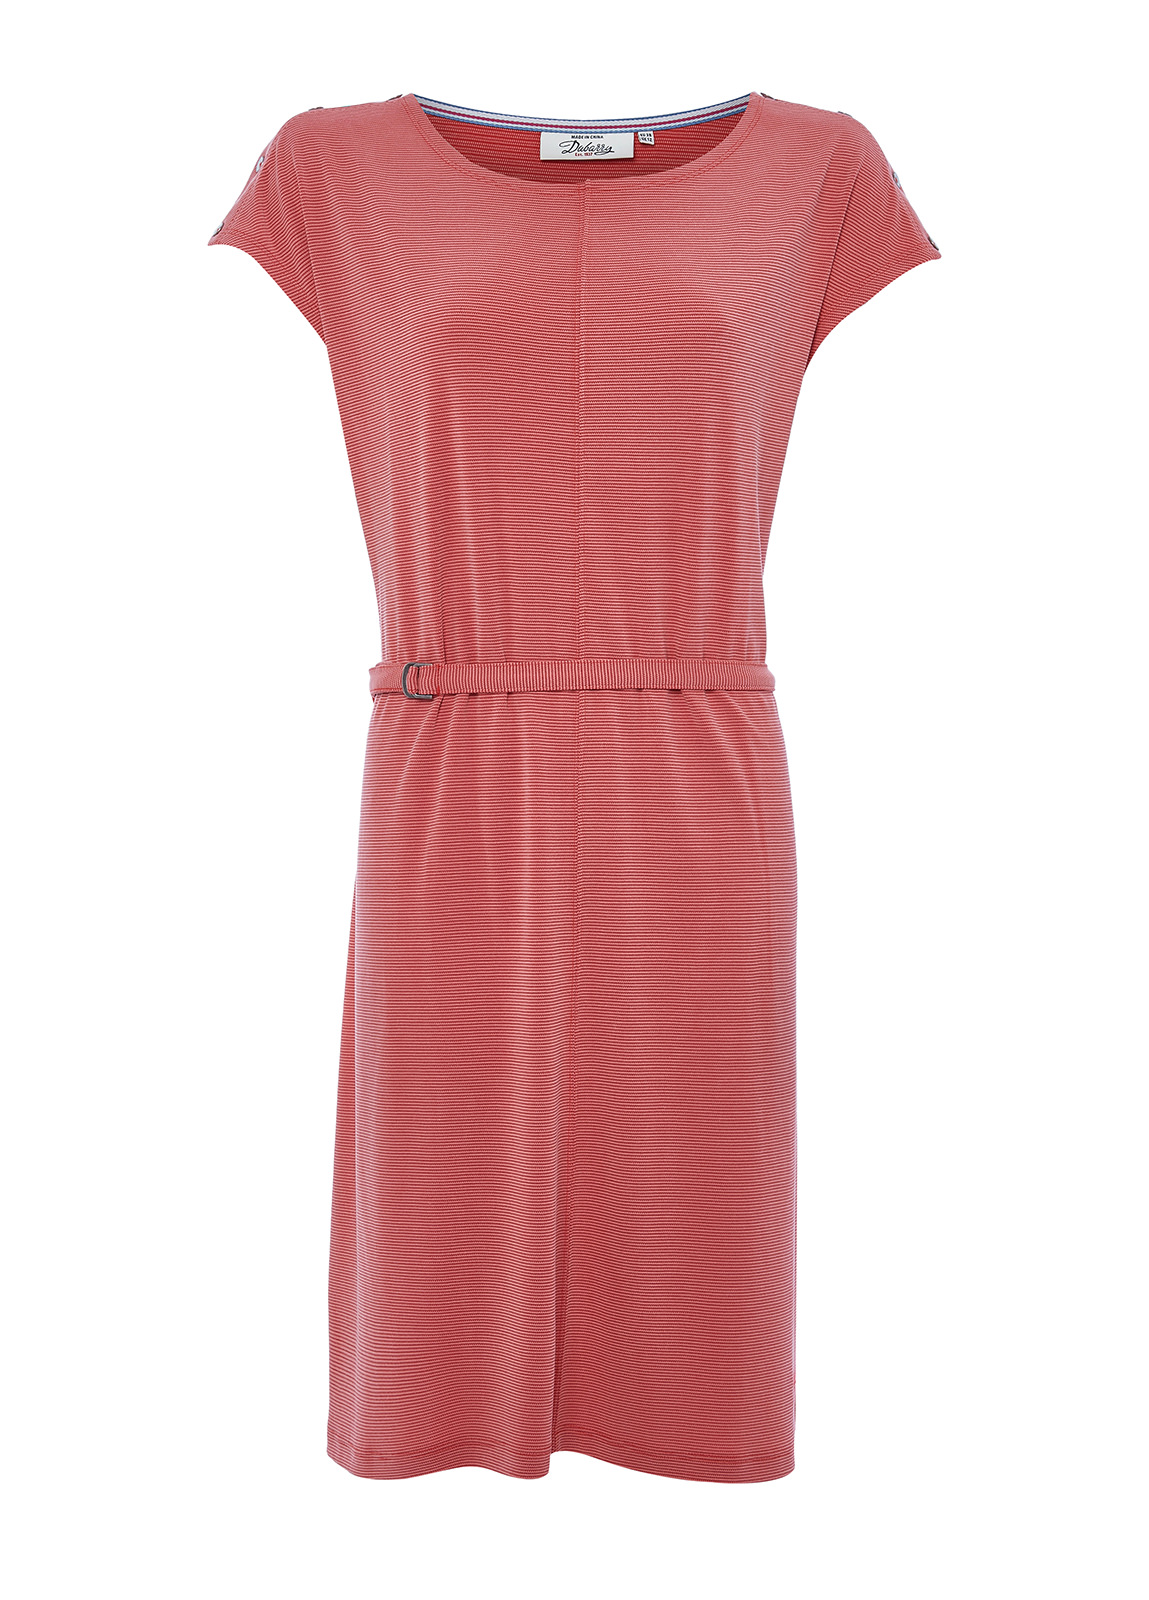 Dubarry_ Kilcullen Dress - Coral_Image_2